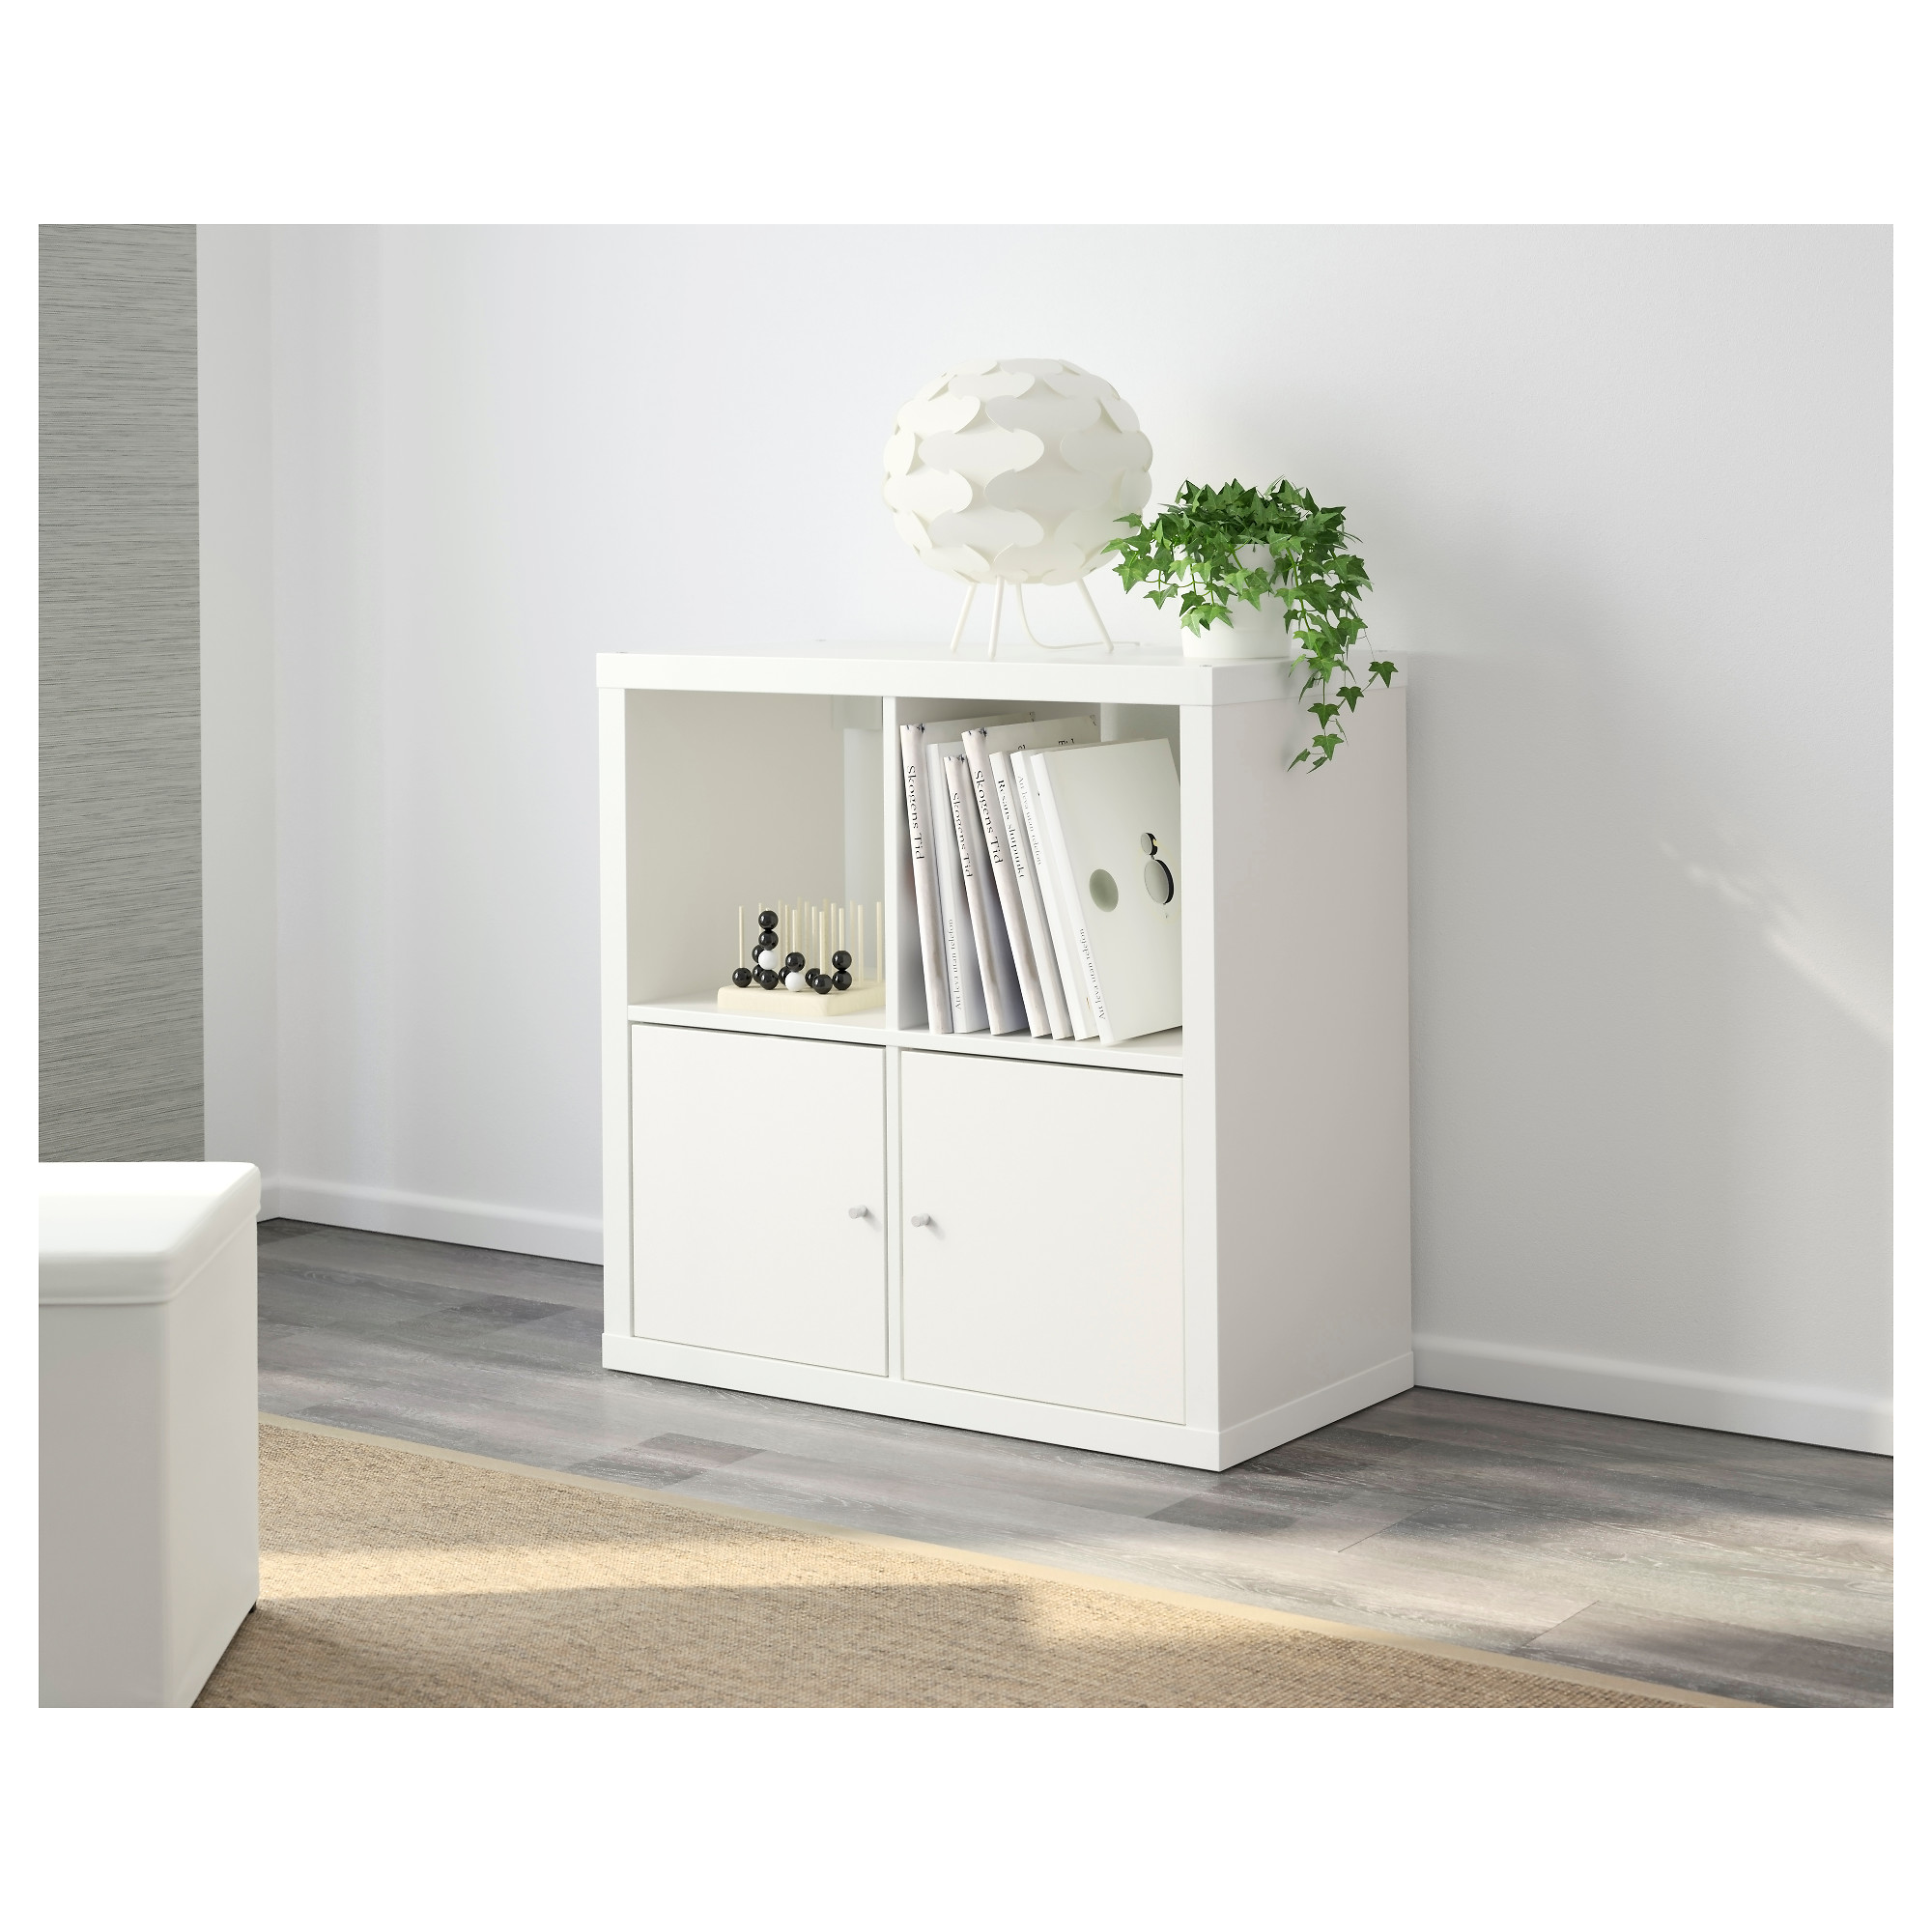 KALLAX Shelf Unit   High Gloss White   IKEA